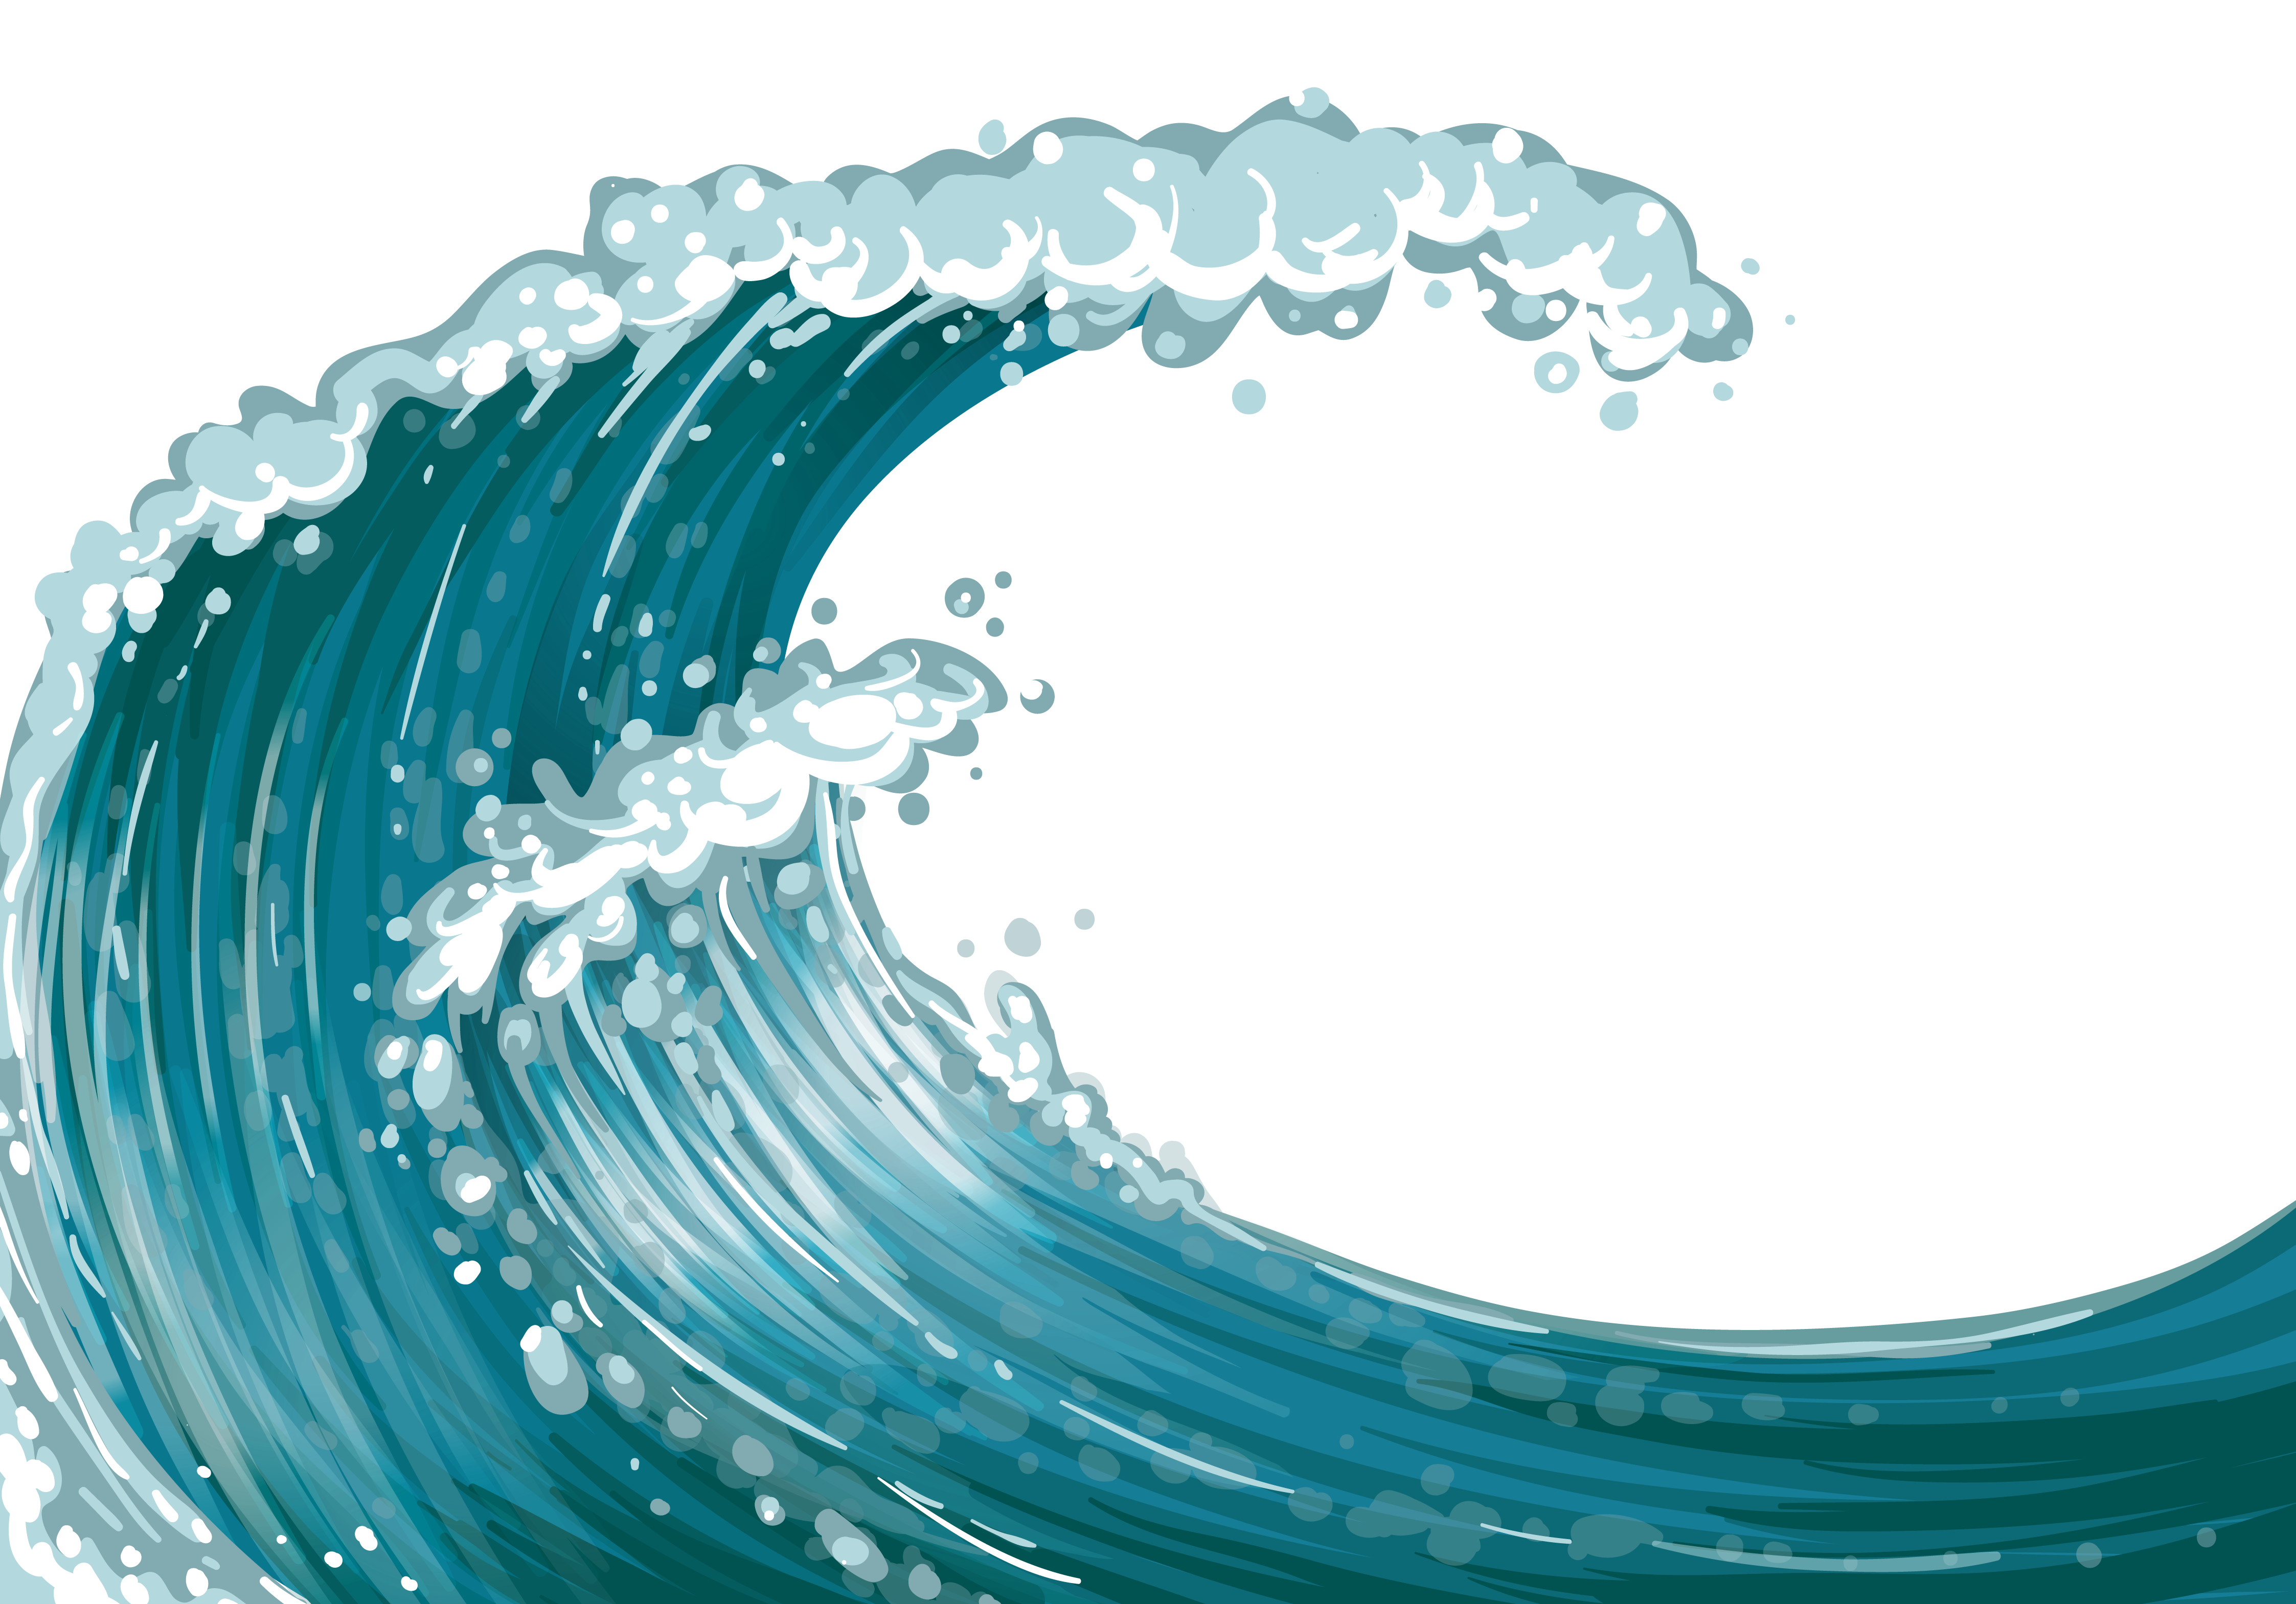 Clipart of a wave picture library download Free Wave Cliparts, Download Free Clip Art, Free Clip Art on Clipart ... picture library download